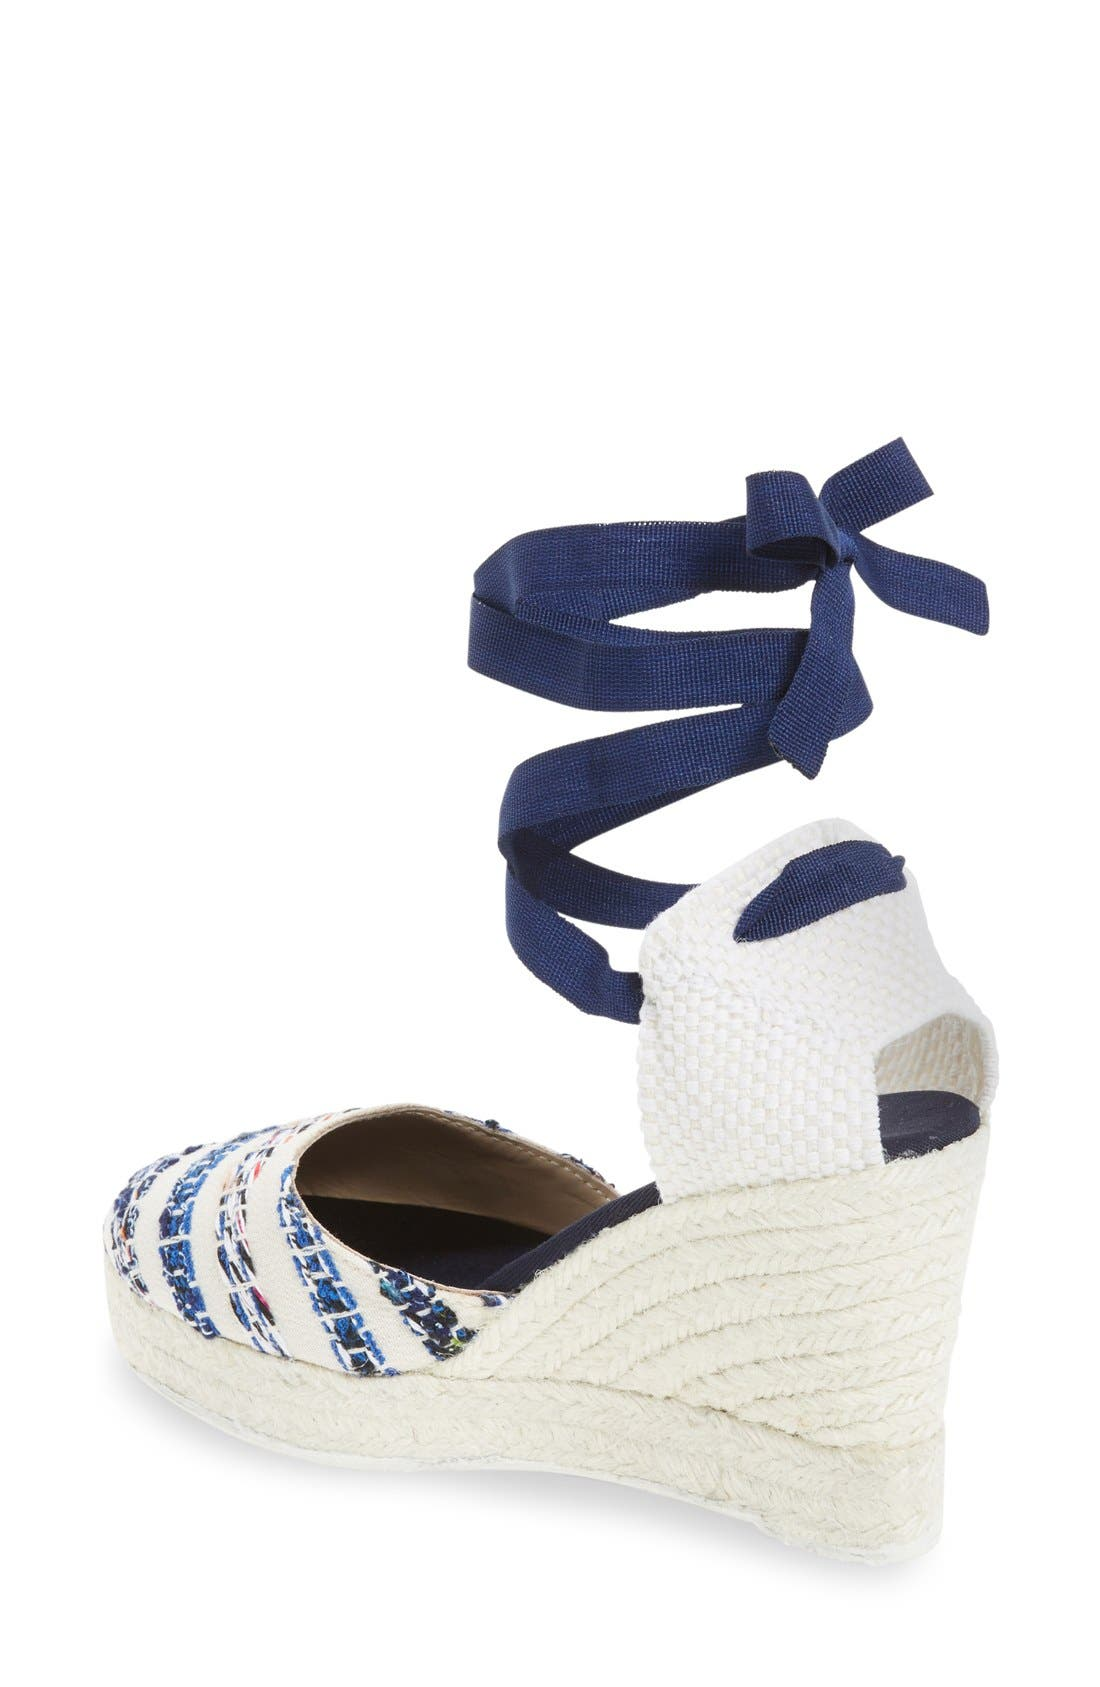 Alternate Image 2  - MANEBÍ 'Ibiza' Espadrille Wedge Sandal (Women)